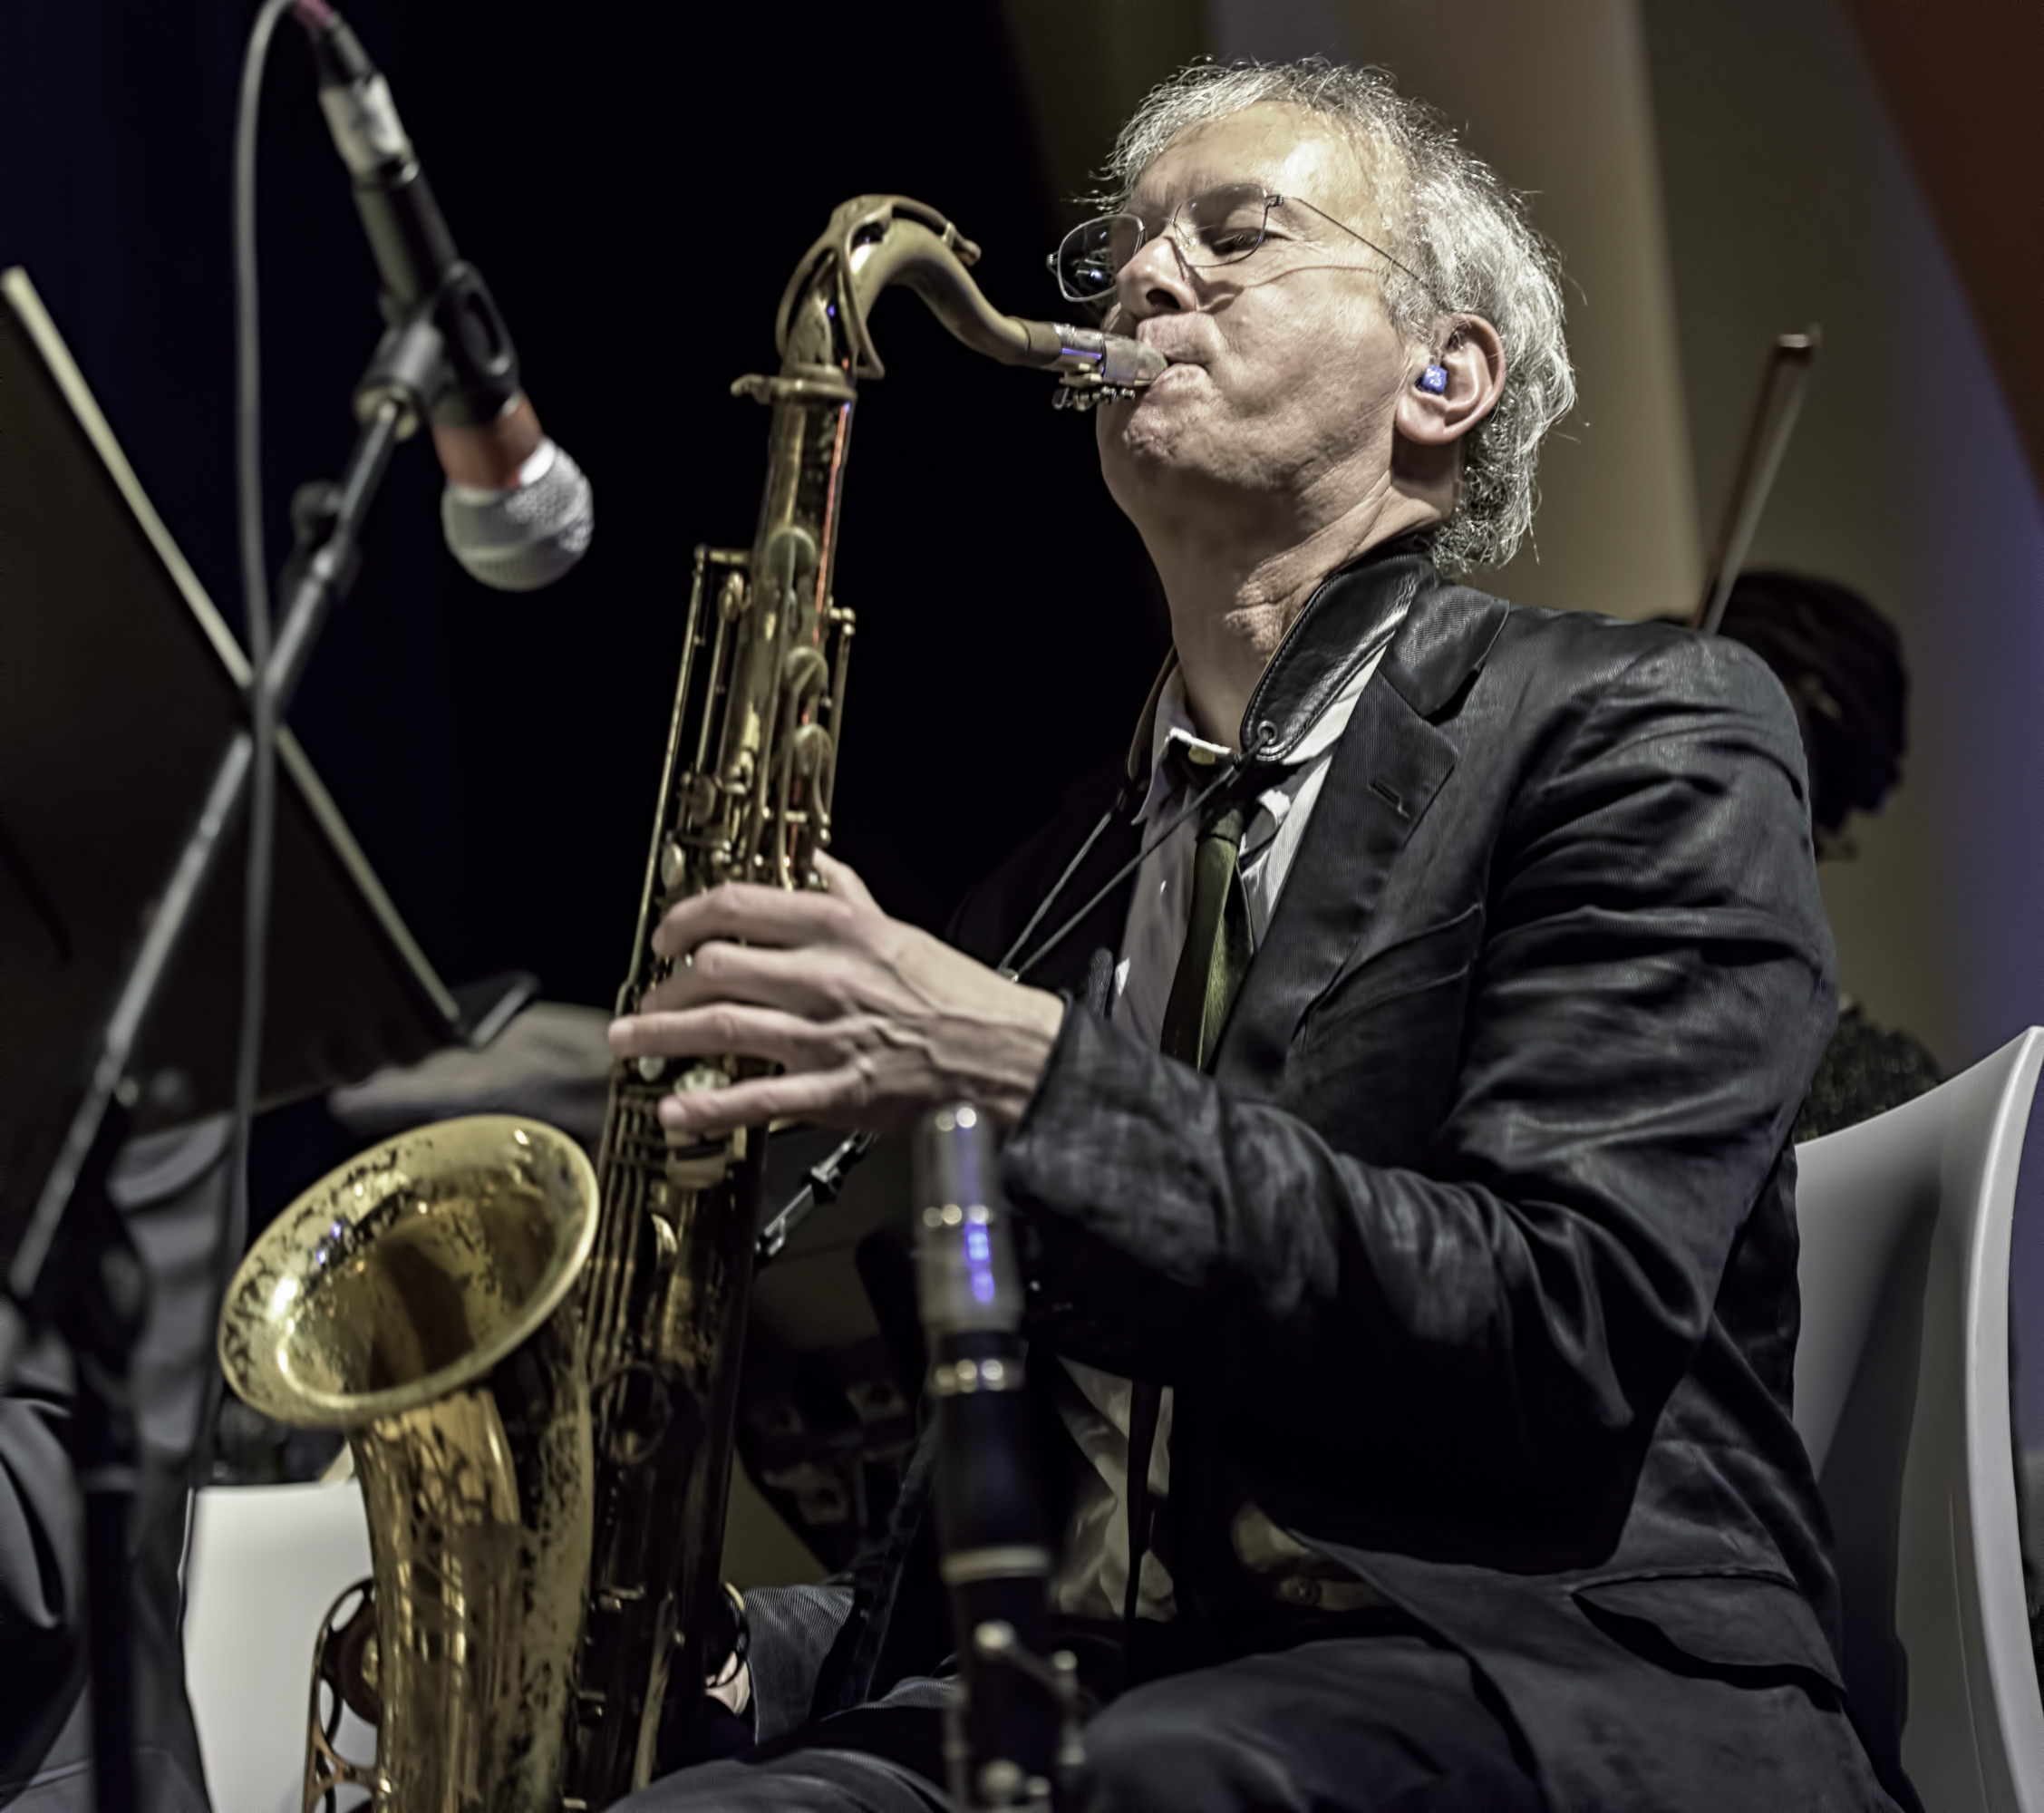 Doug Wieselman with Butler, Bernstein and the Hot 9 at the NYC Winter Jazzfest 2016